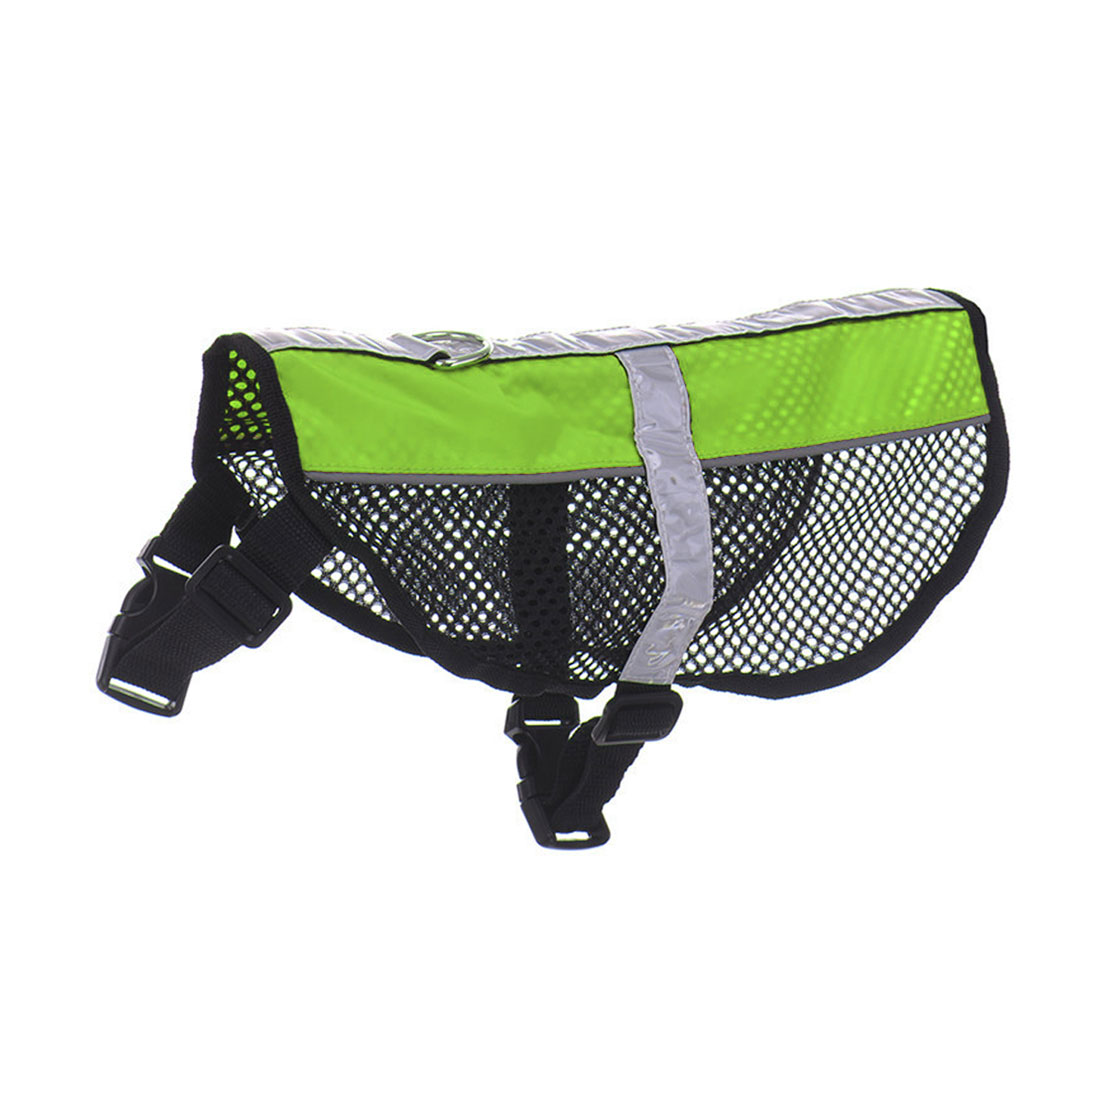 Service Dog Mesh Vest Harness Cool Comfort Nylon High Visibility Safety Jacket Green M